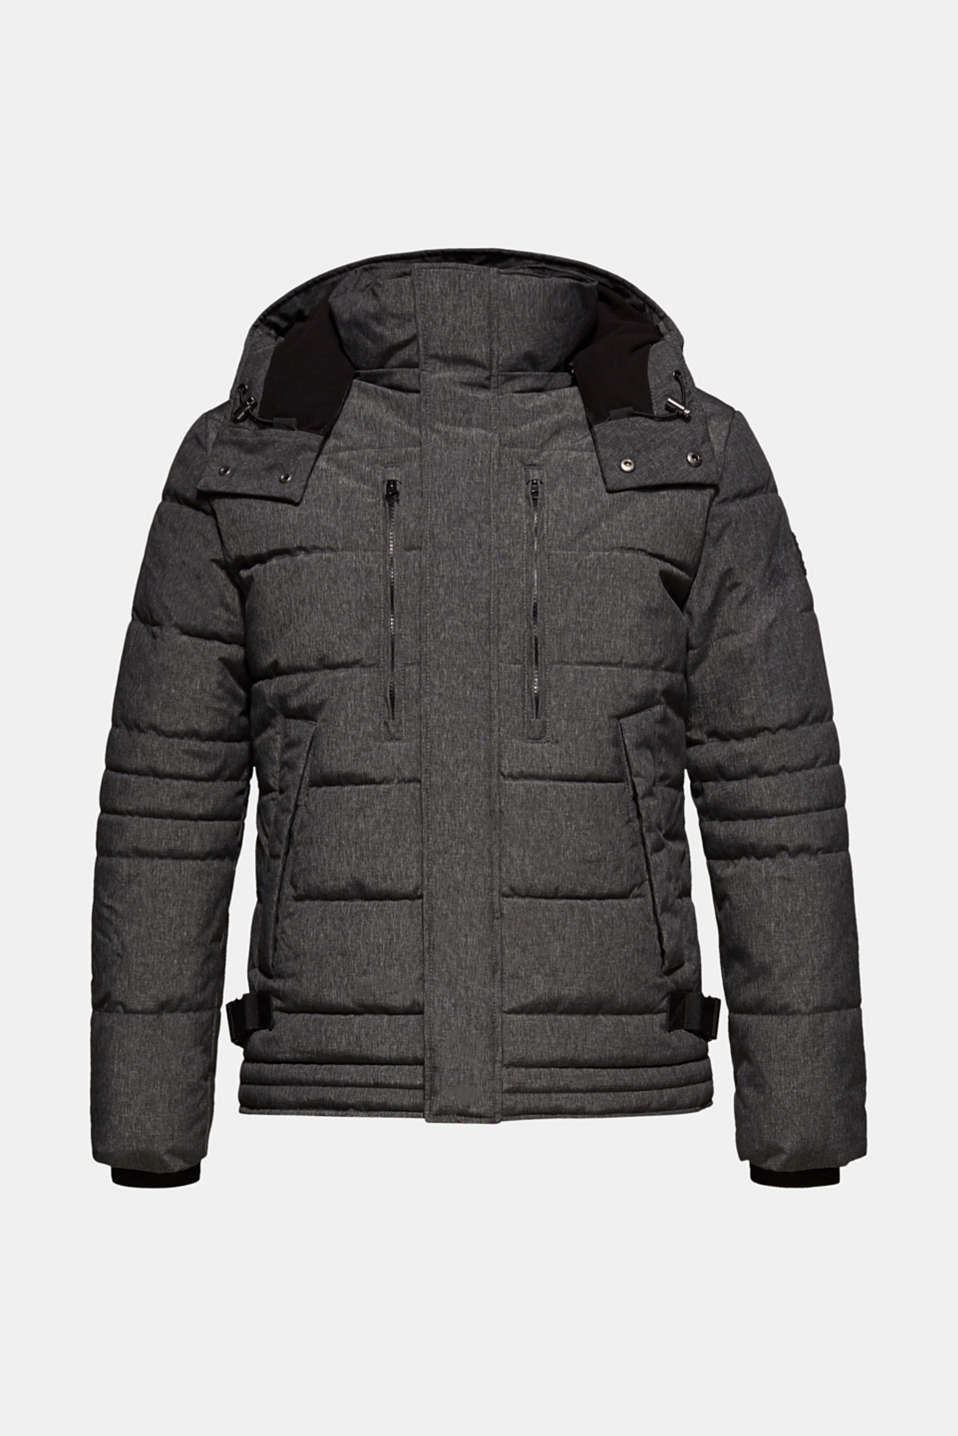 Winter jacket with an adjustable hood, GREY, detail image number 7